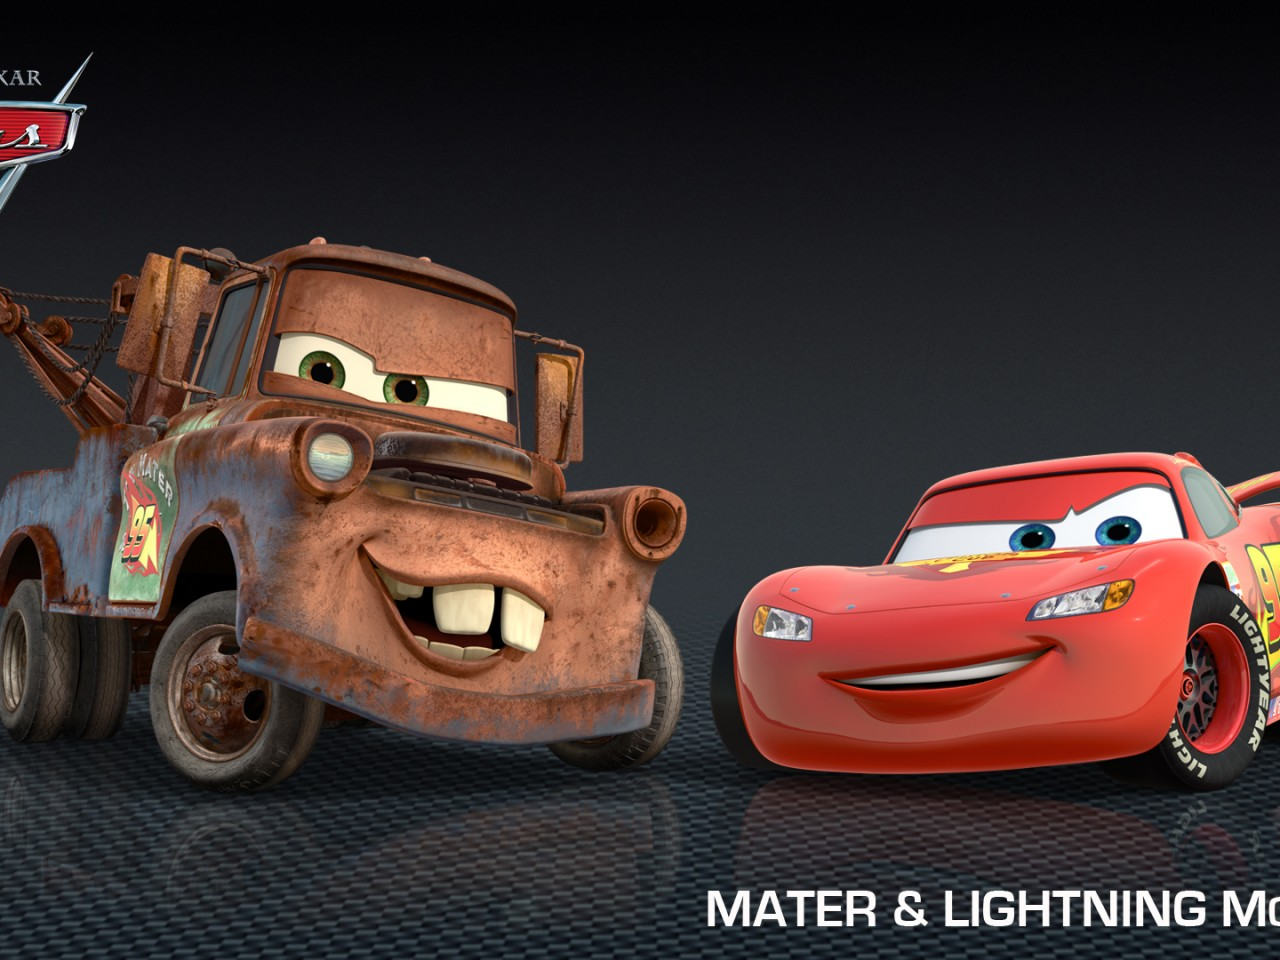 Mater & Lightning Mcqueen From Cars 2  Hd Wallpapers